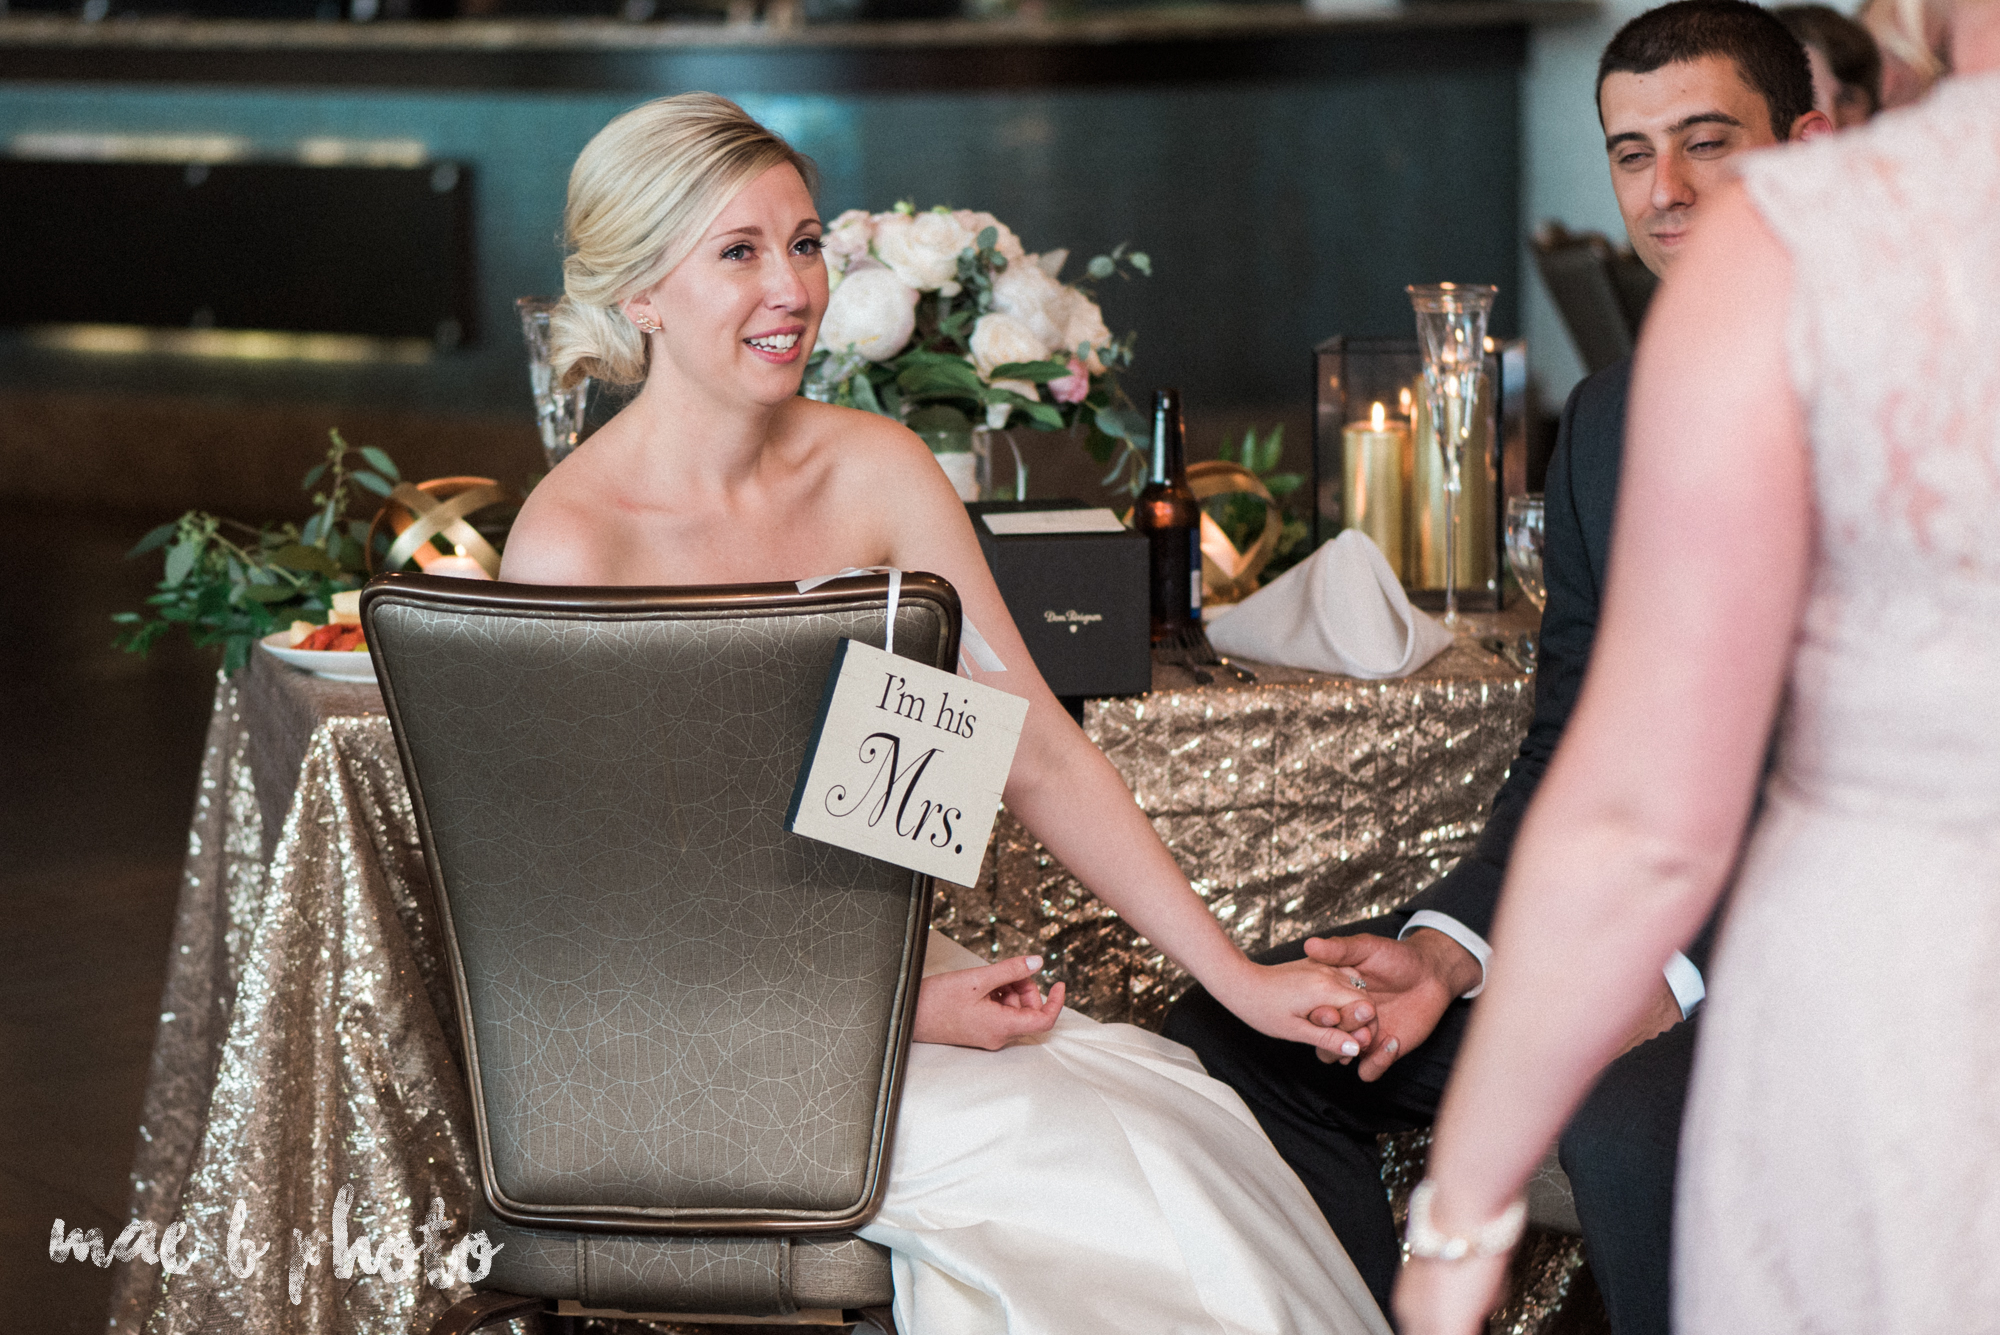 emily and michael's industrial chic summer country club wedding at the lake club in poland ohio photographed by cleveland wedding photographer mae b photo-116.jpg